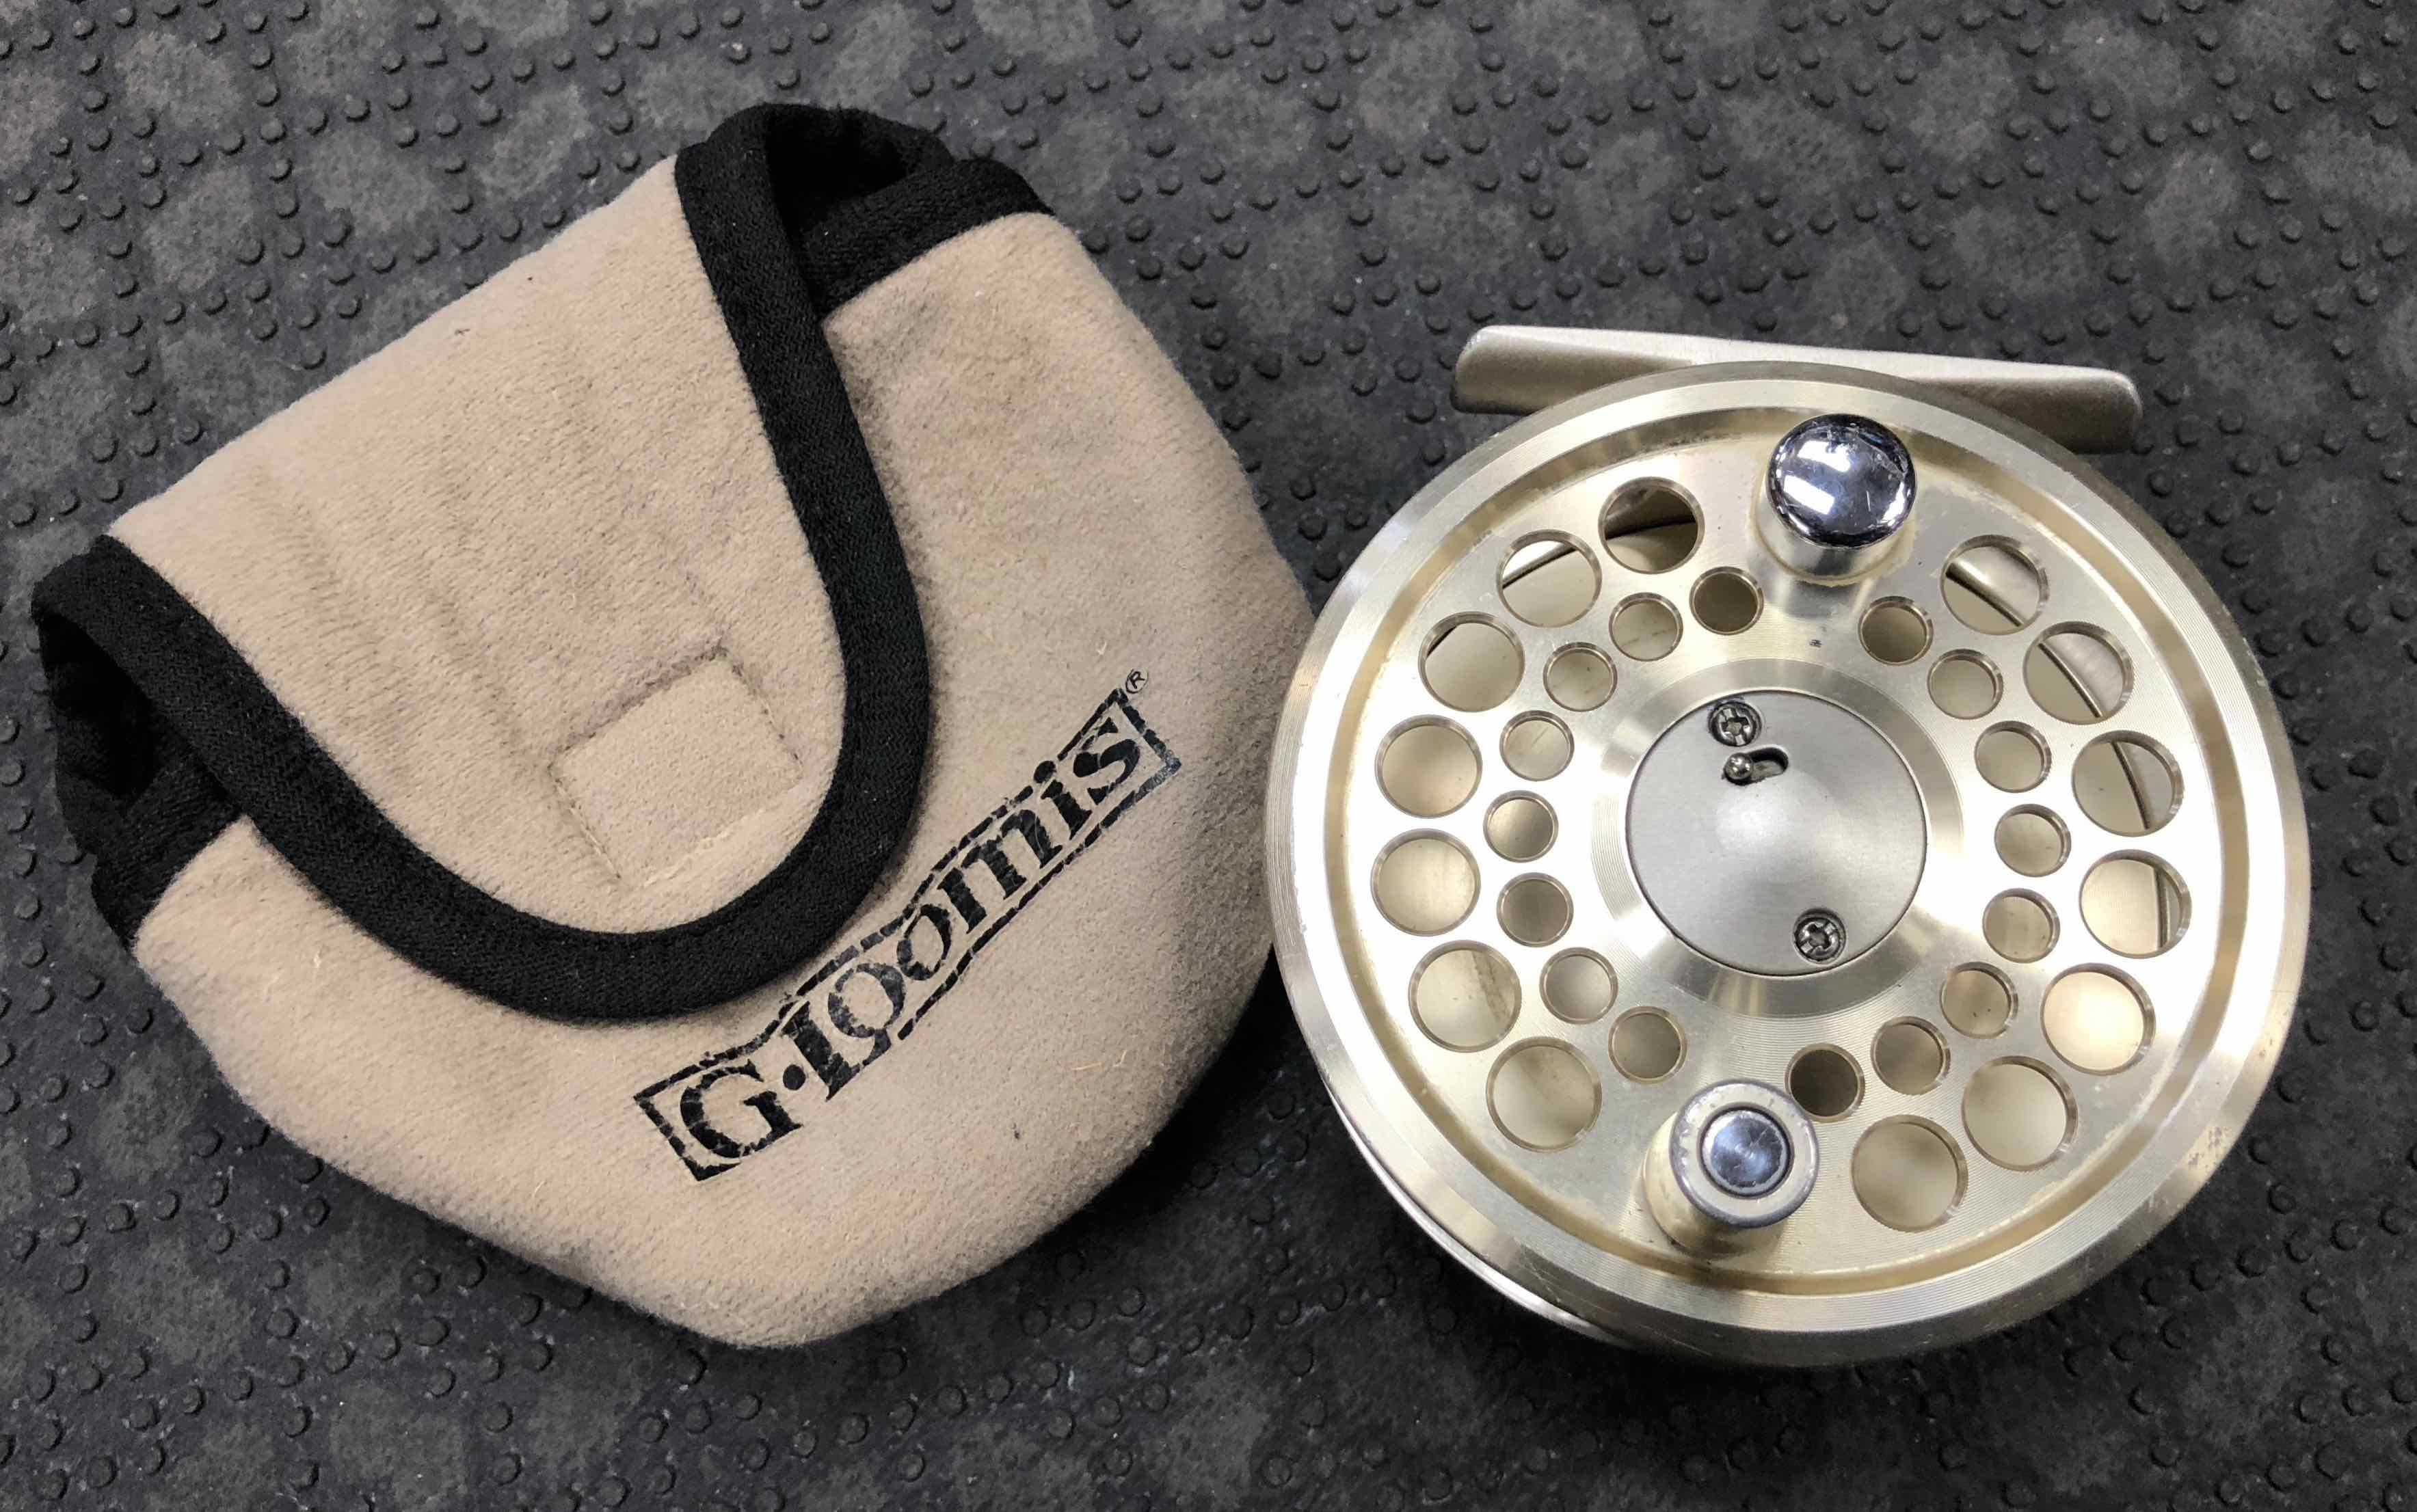 G. Loomis Venture 5 Fly Reel - GOOD SHAPE! - $75